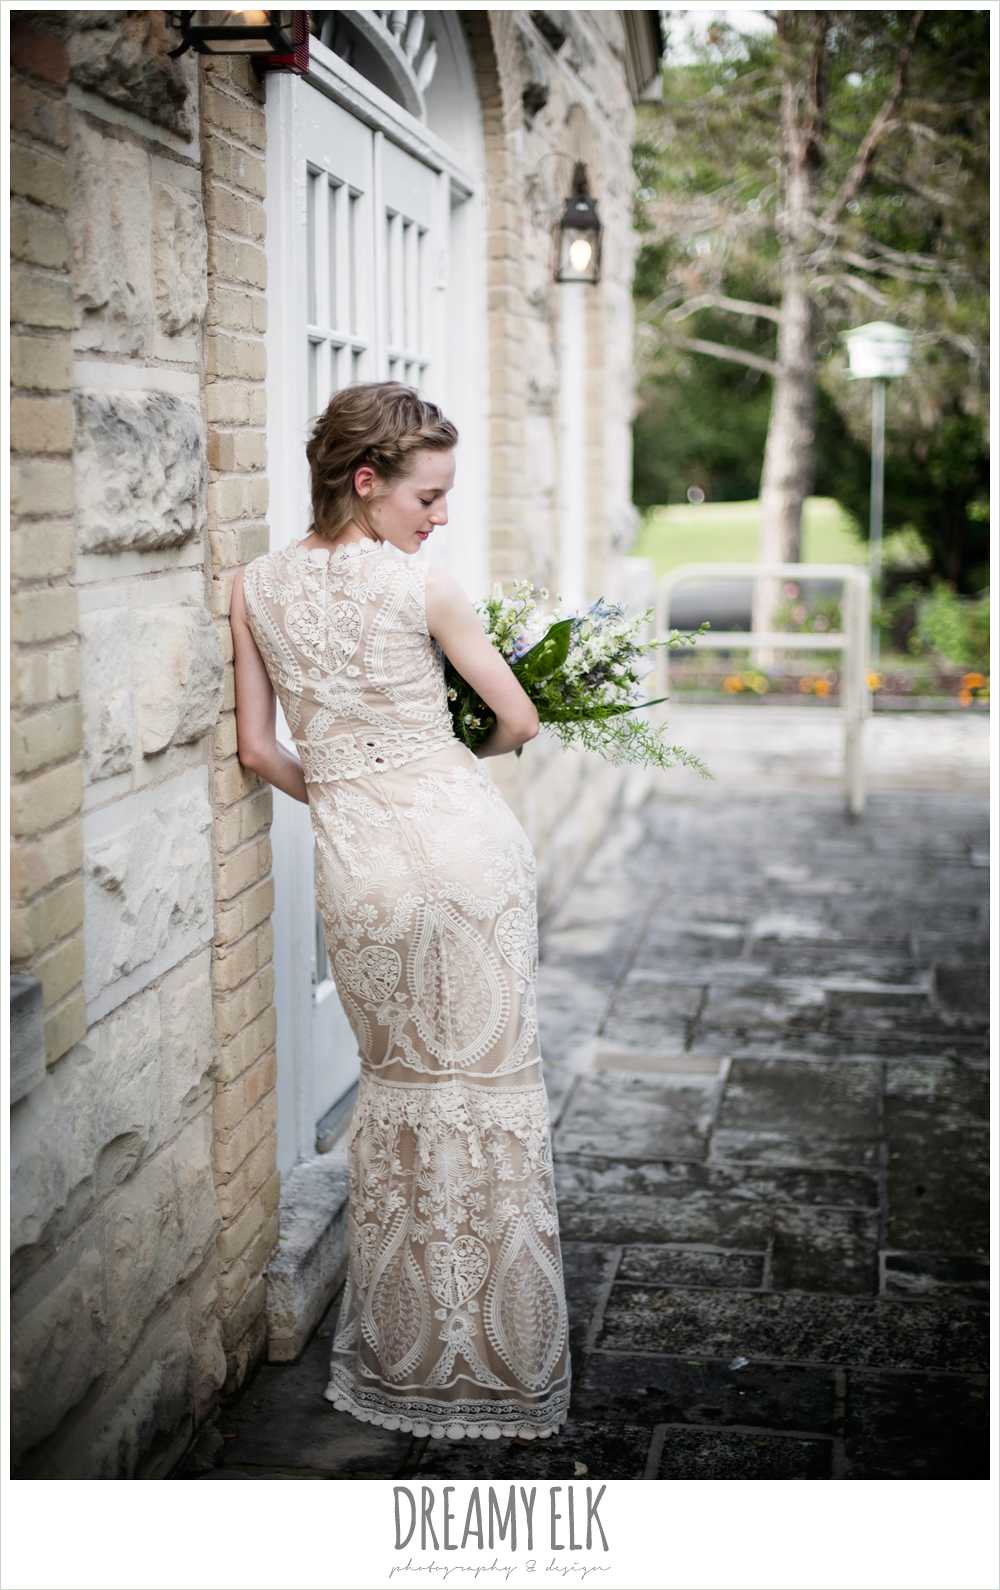 ivory bhldn wedding dress, wedding hair short, spring wedding, austin, texas {dreamy elk photography and design}